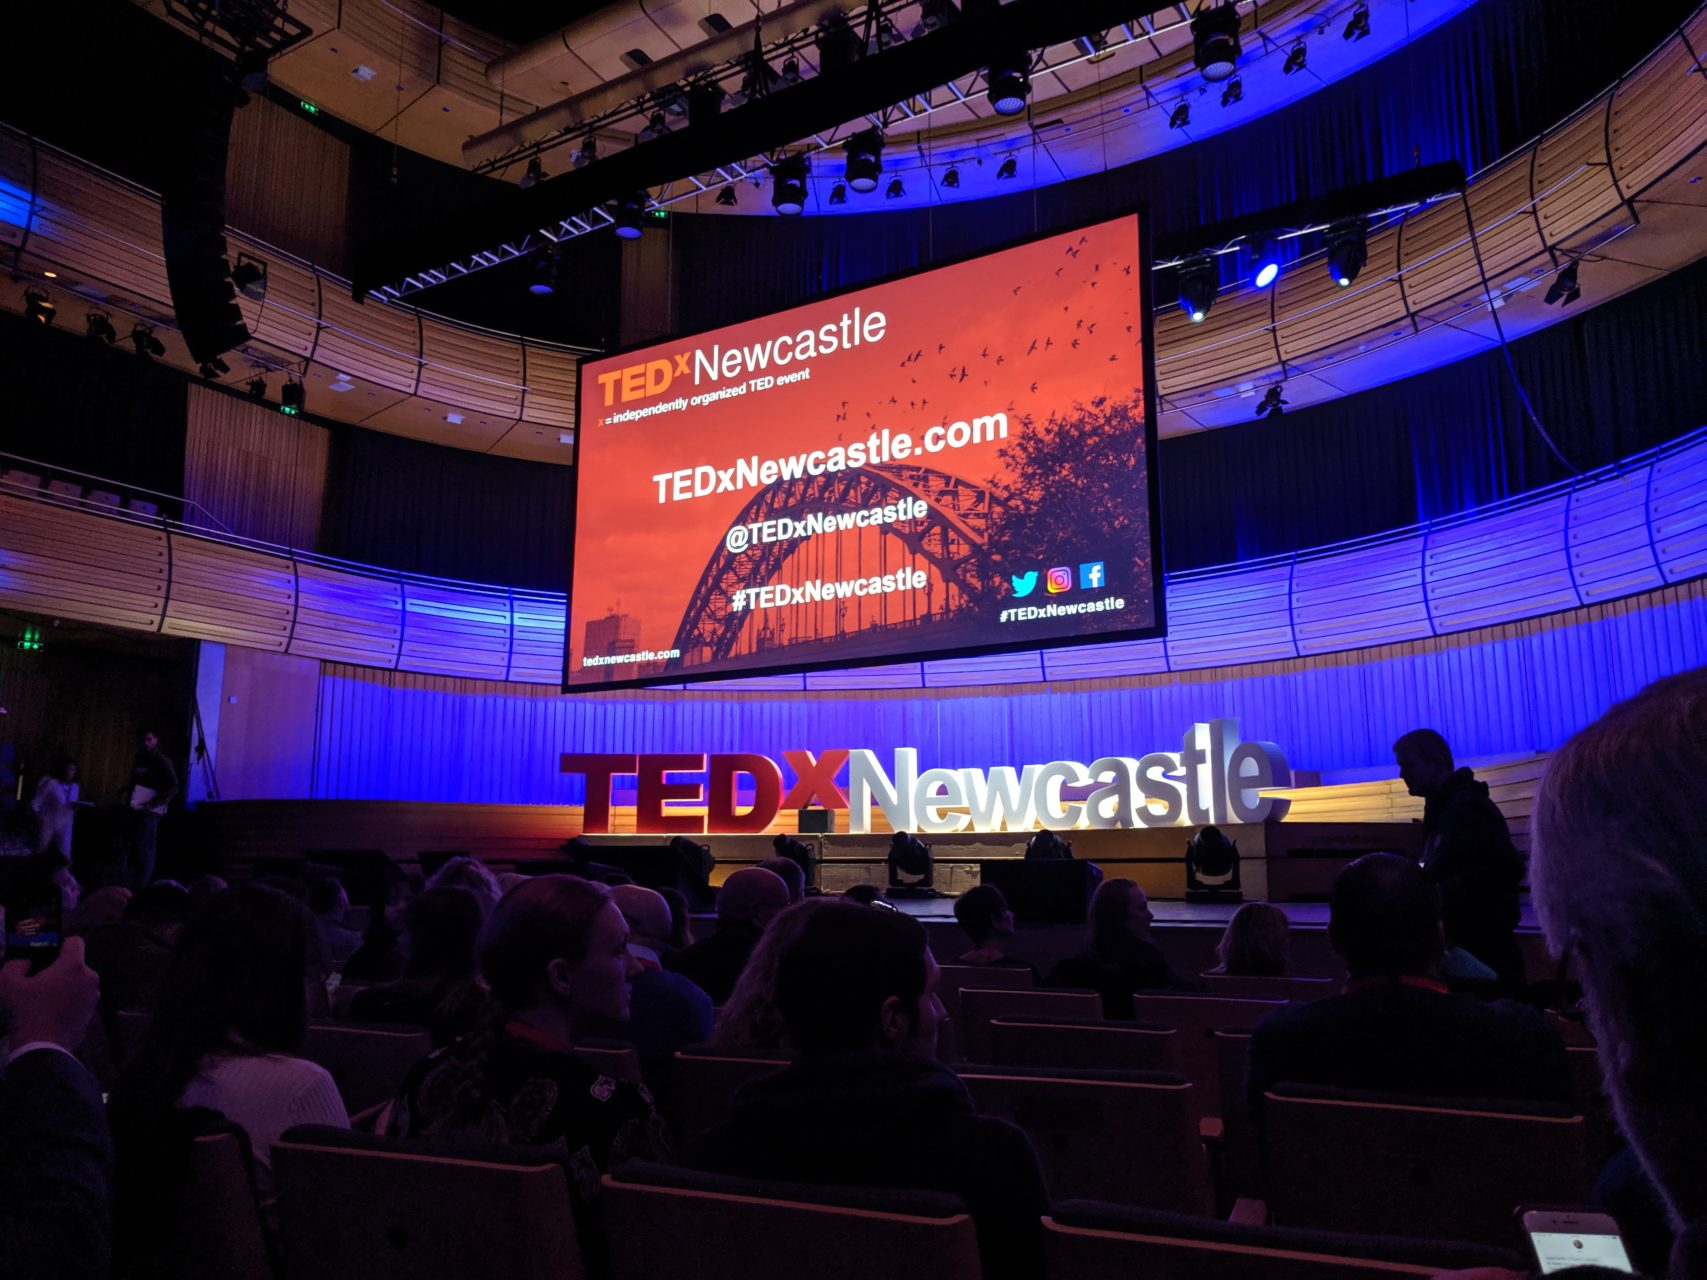 TedxNewcastle stage